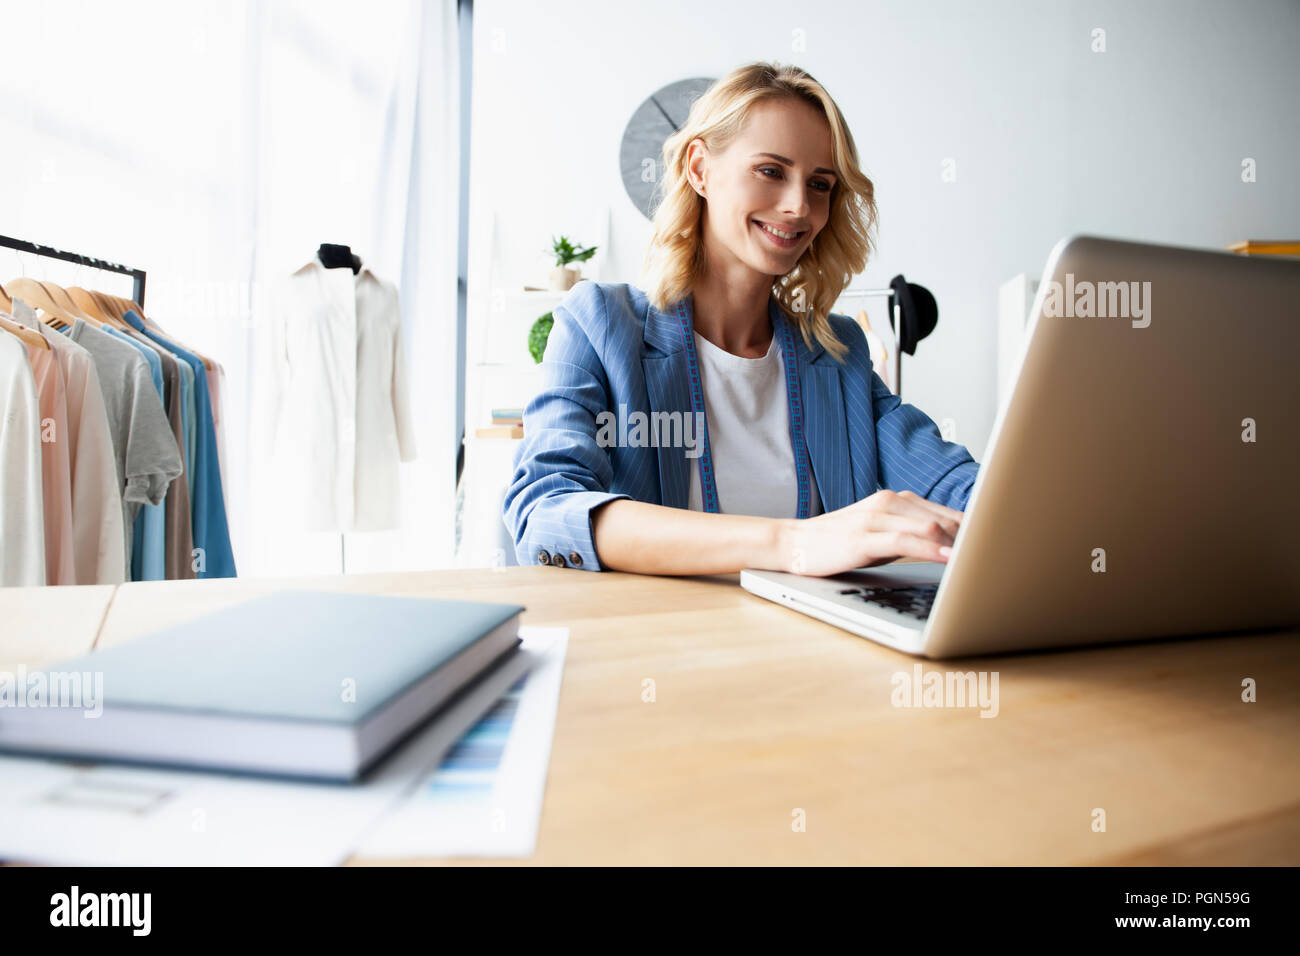 Fashion designer working on her designs in the studio - Stock Image